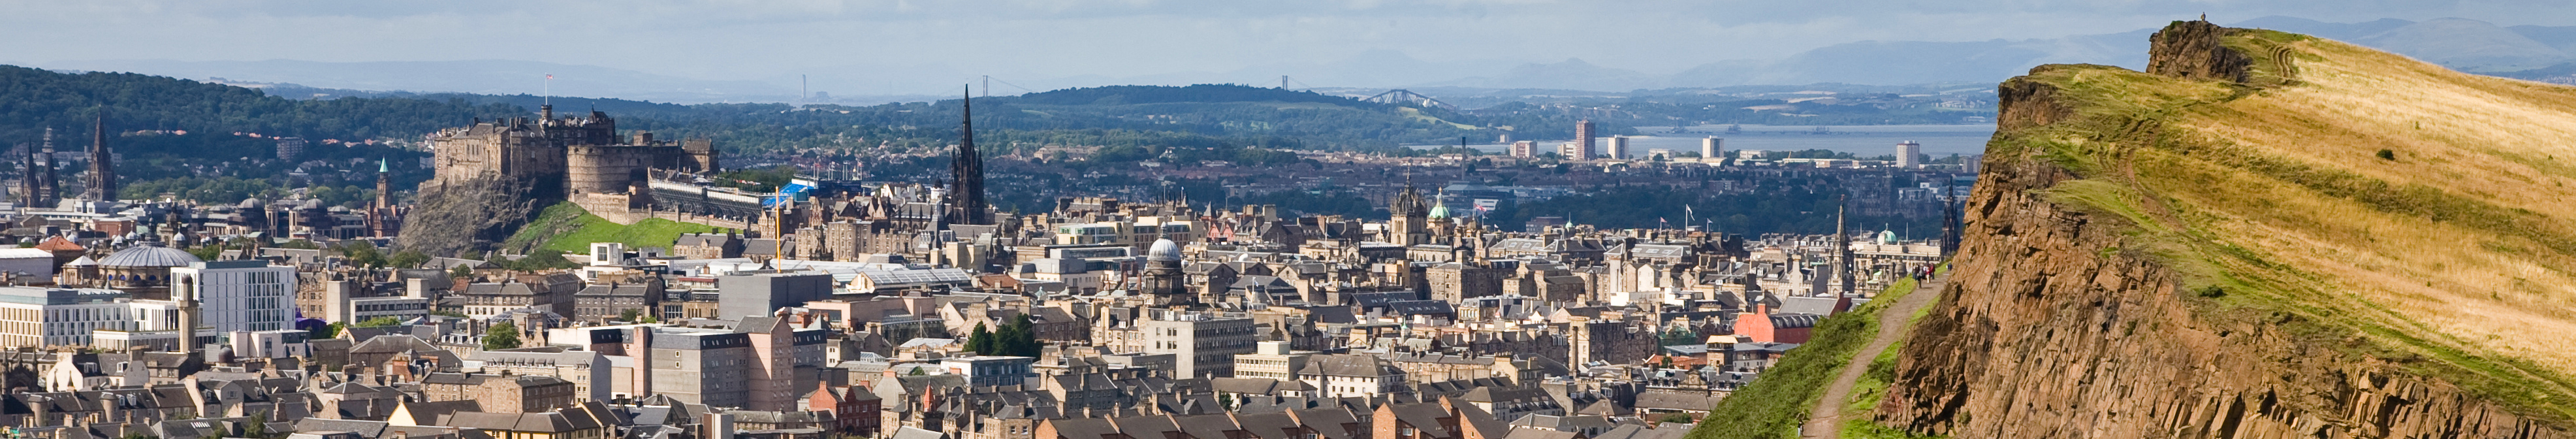 A view over Edinburgh from Arthur's seat in Holyrood park, Scotland